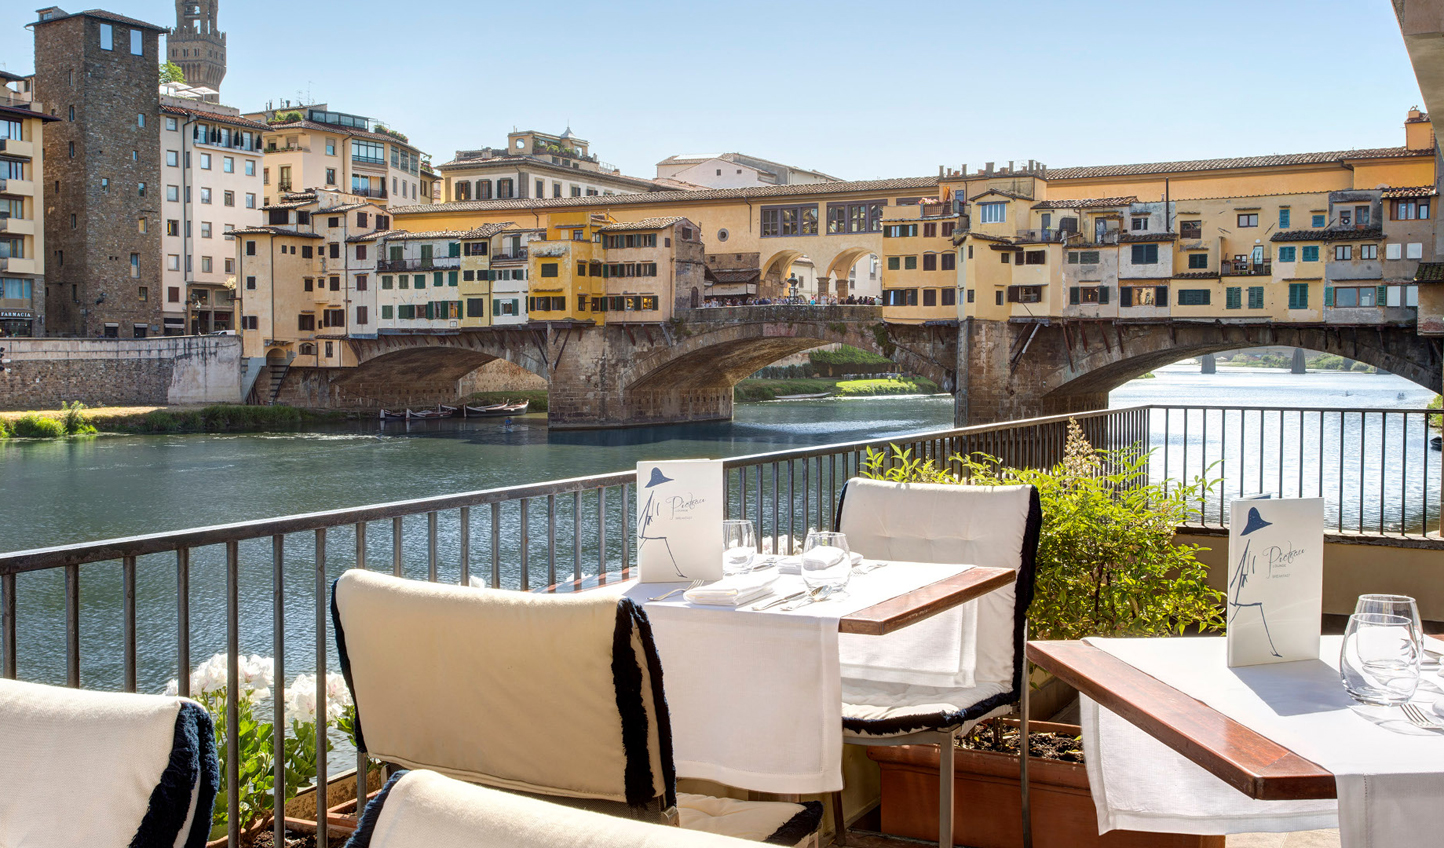 The perfect spot for aperitivo